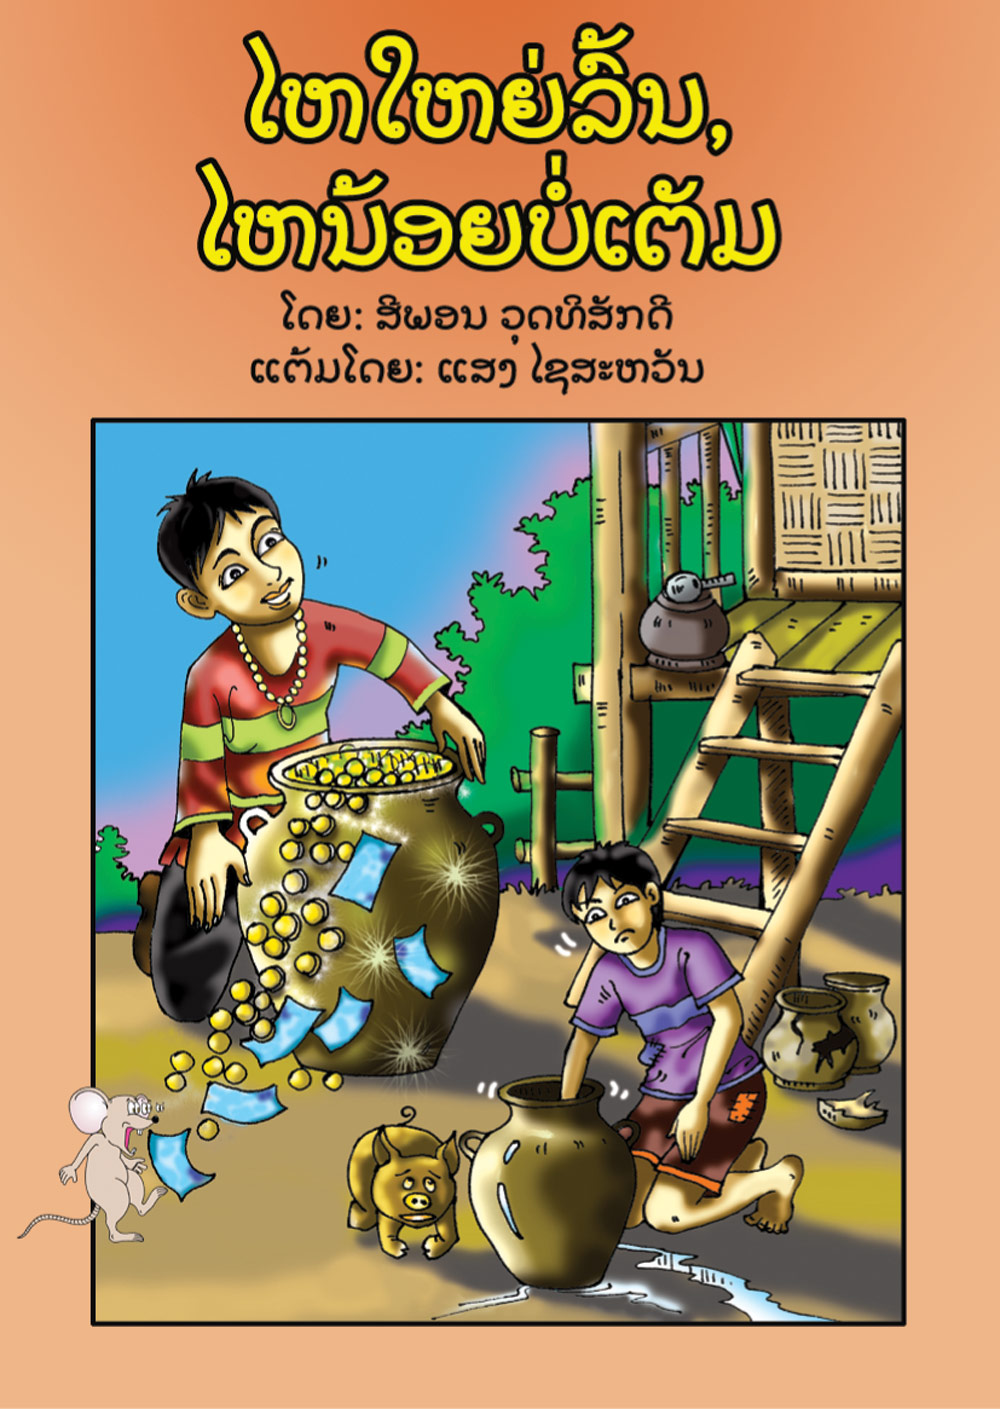 The Big Jar is Too Full, The Small Jar is Not Full large book cover, published in Lao language